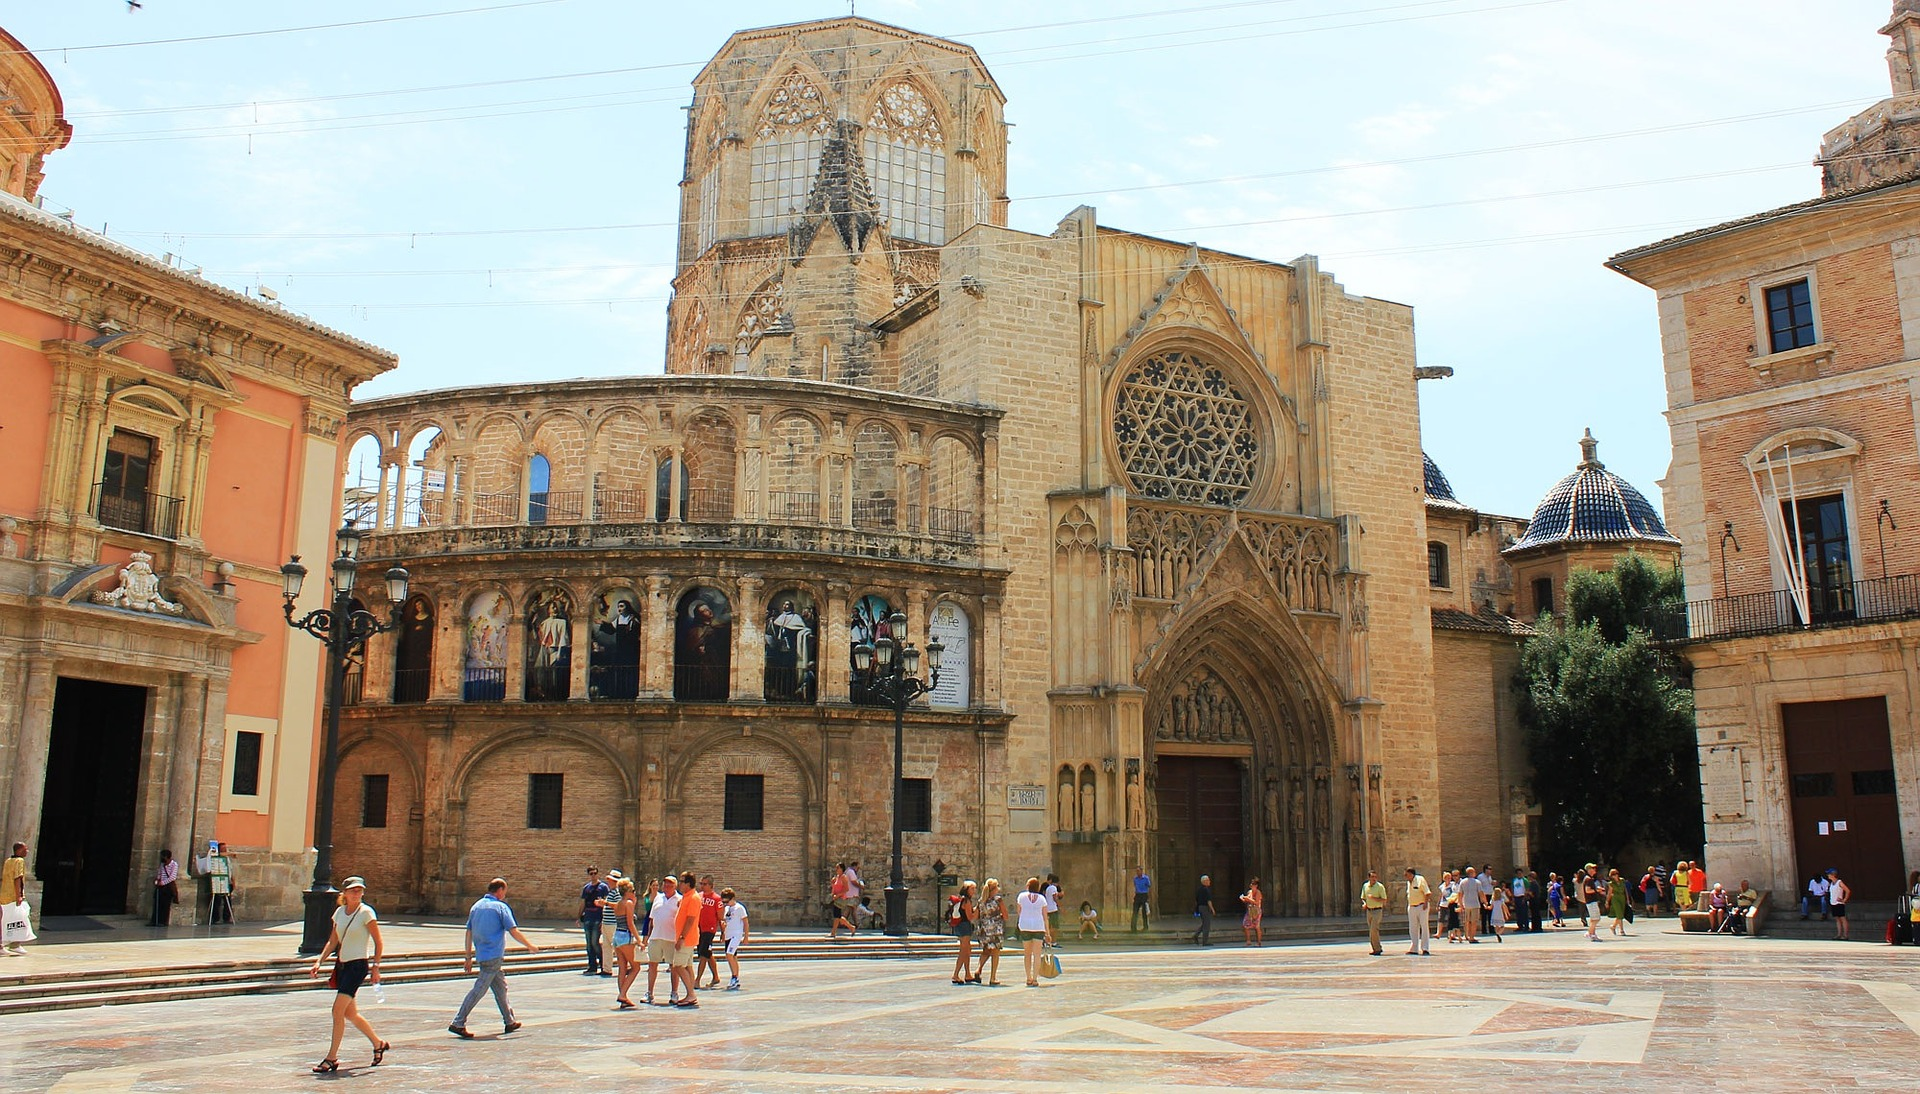 National Holiday in Spain: 15th of August